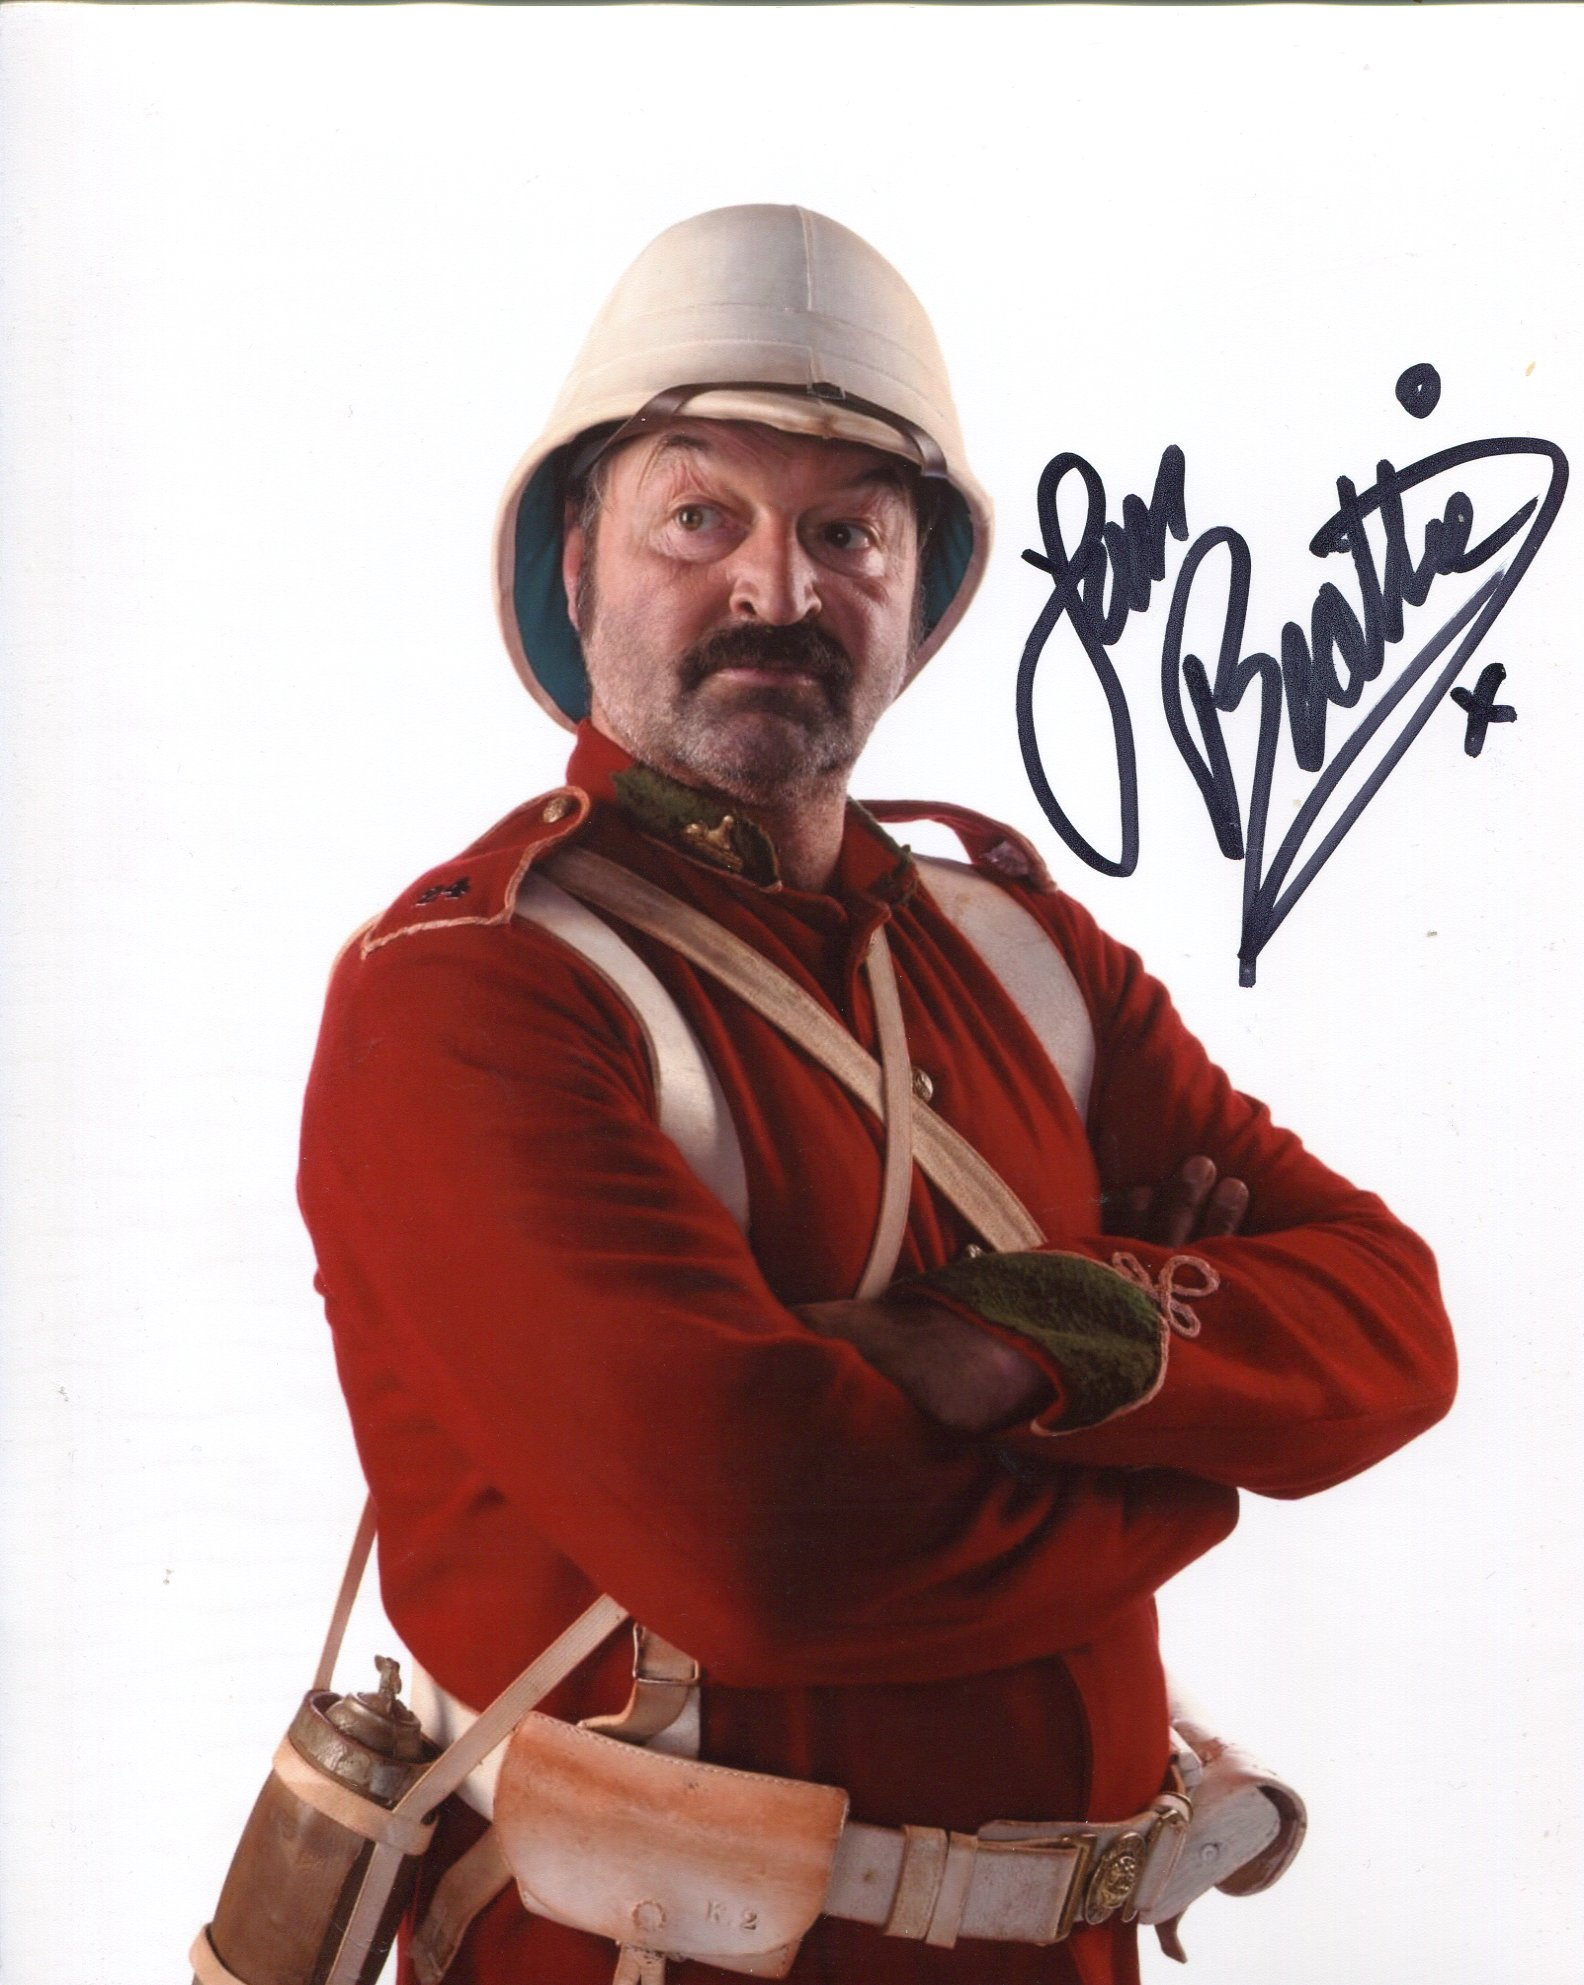 Doctor Who Empress of Mars 8x10 photo signed by actor Ian Beattie as 'Jackdaw'. Good condition.